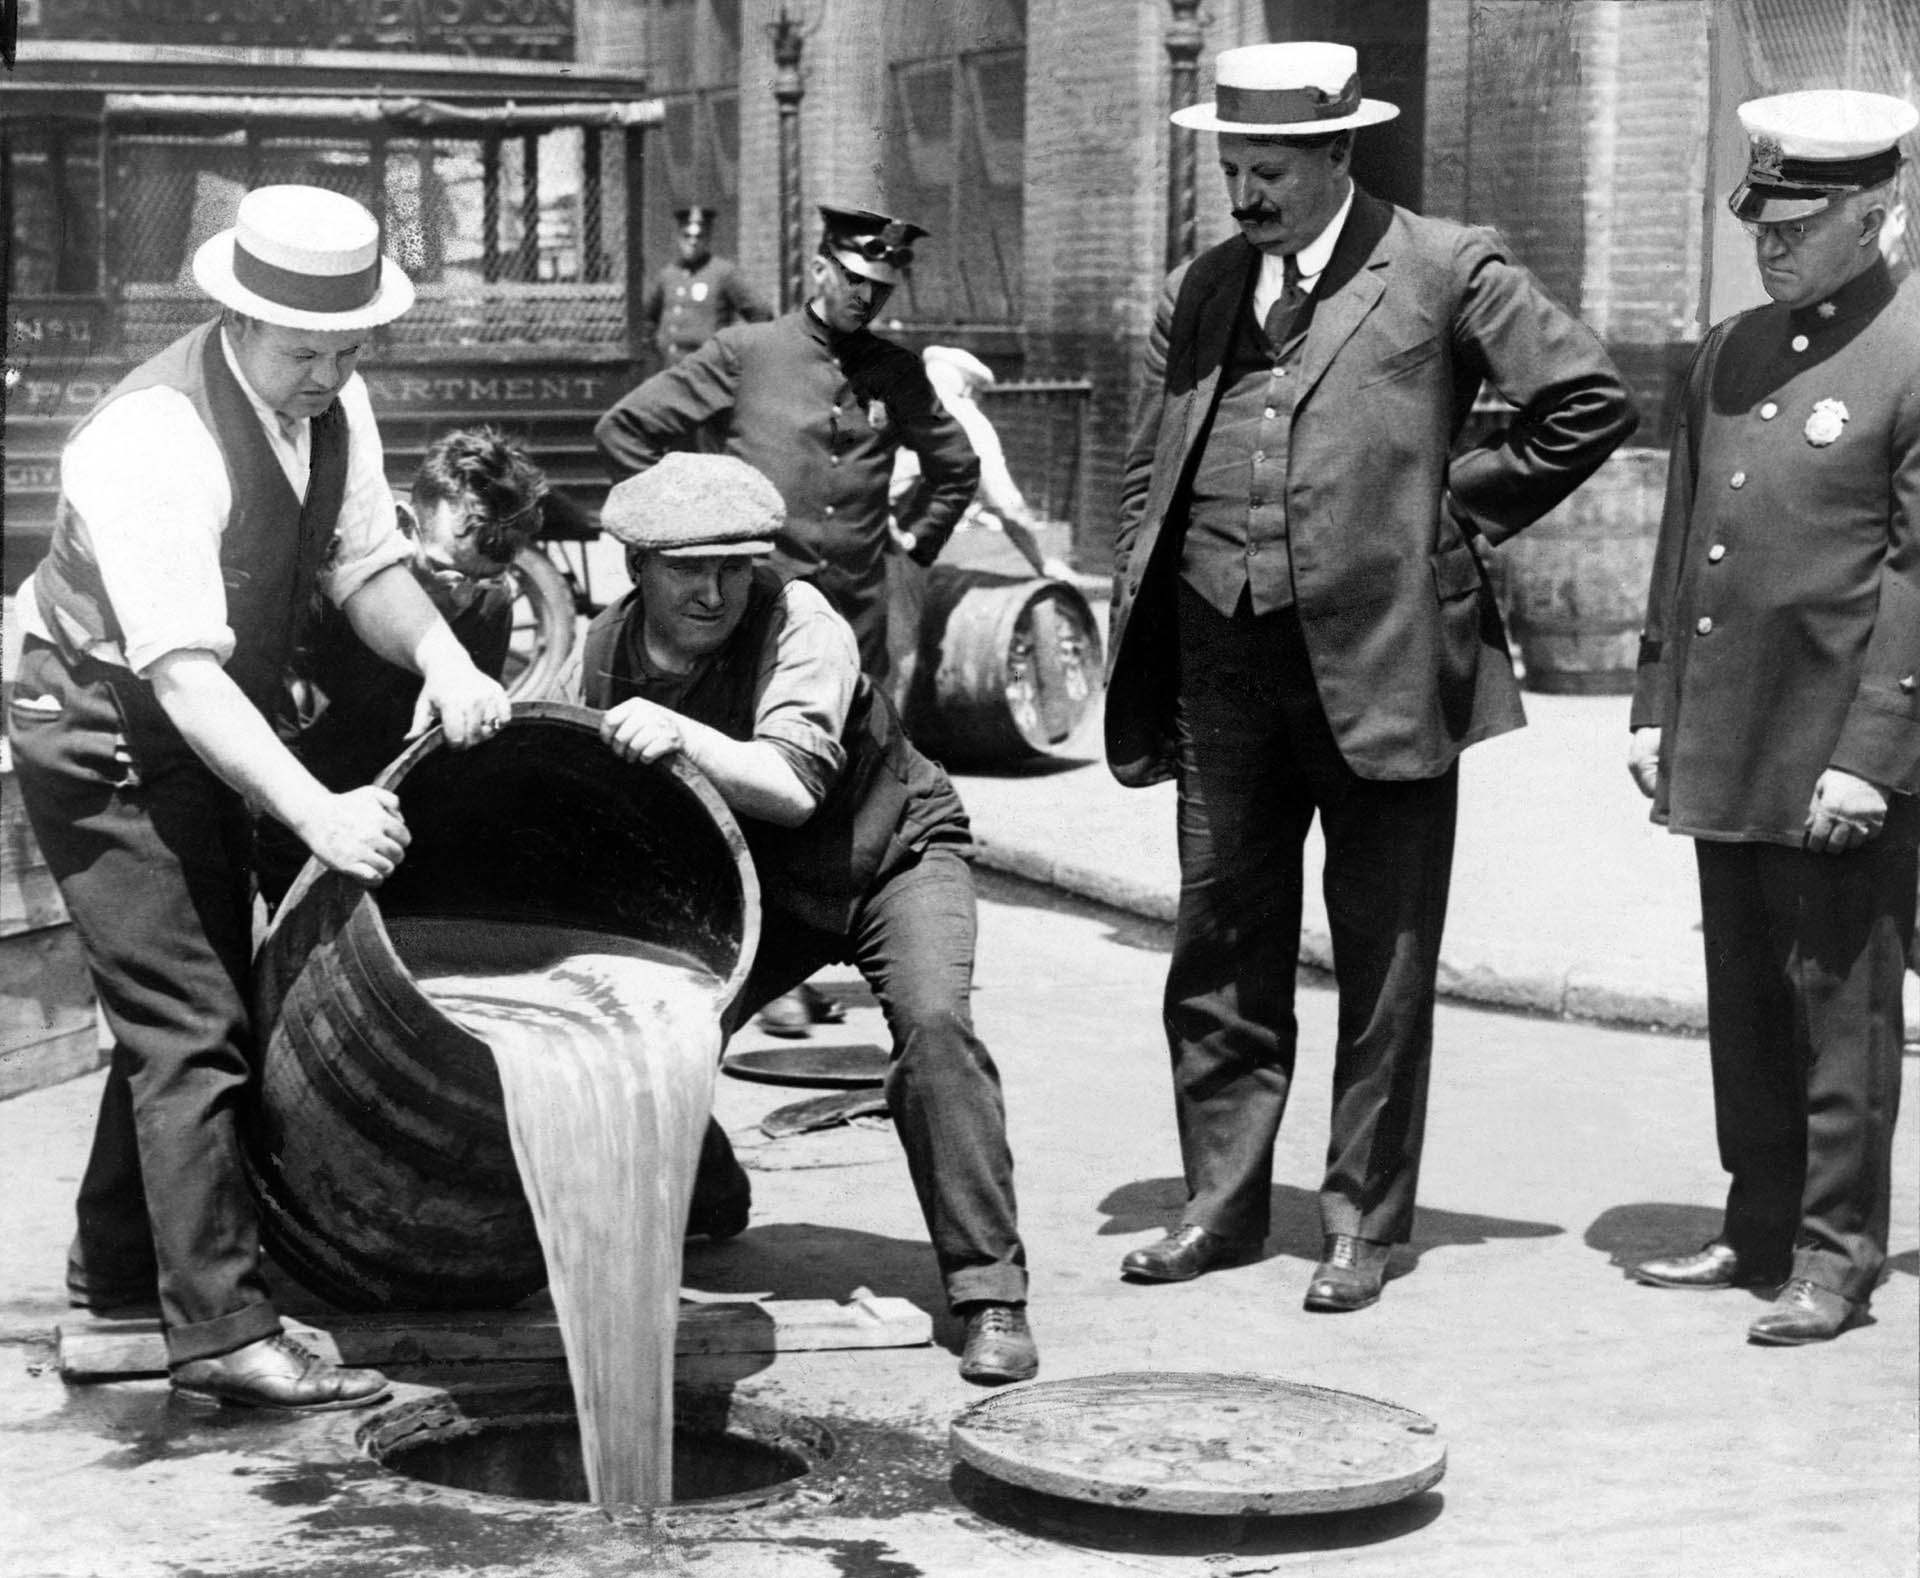 New York City Deputy Police Commissioner John A. Leach watching agents pour alcohol down a manhole following a raid during Prohibition 1921